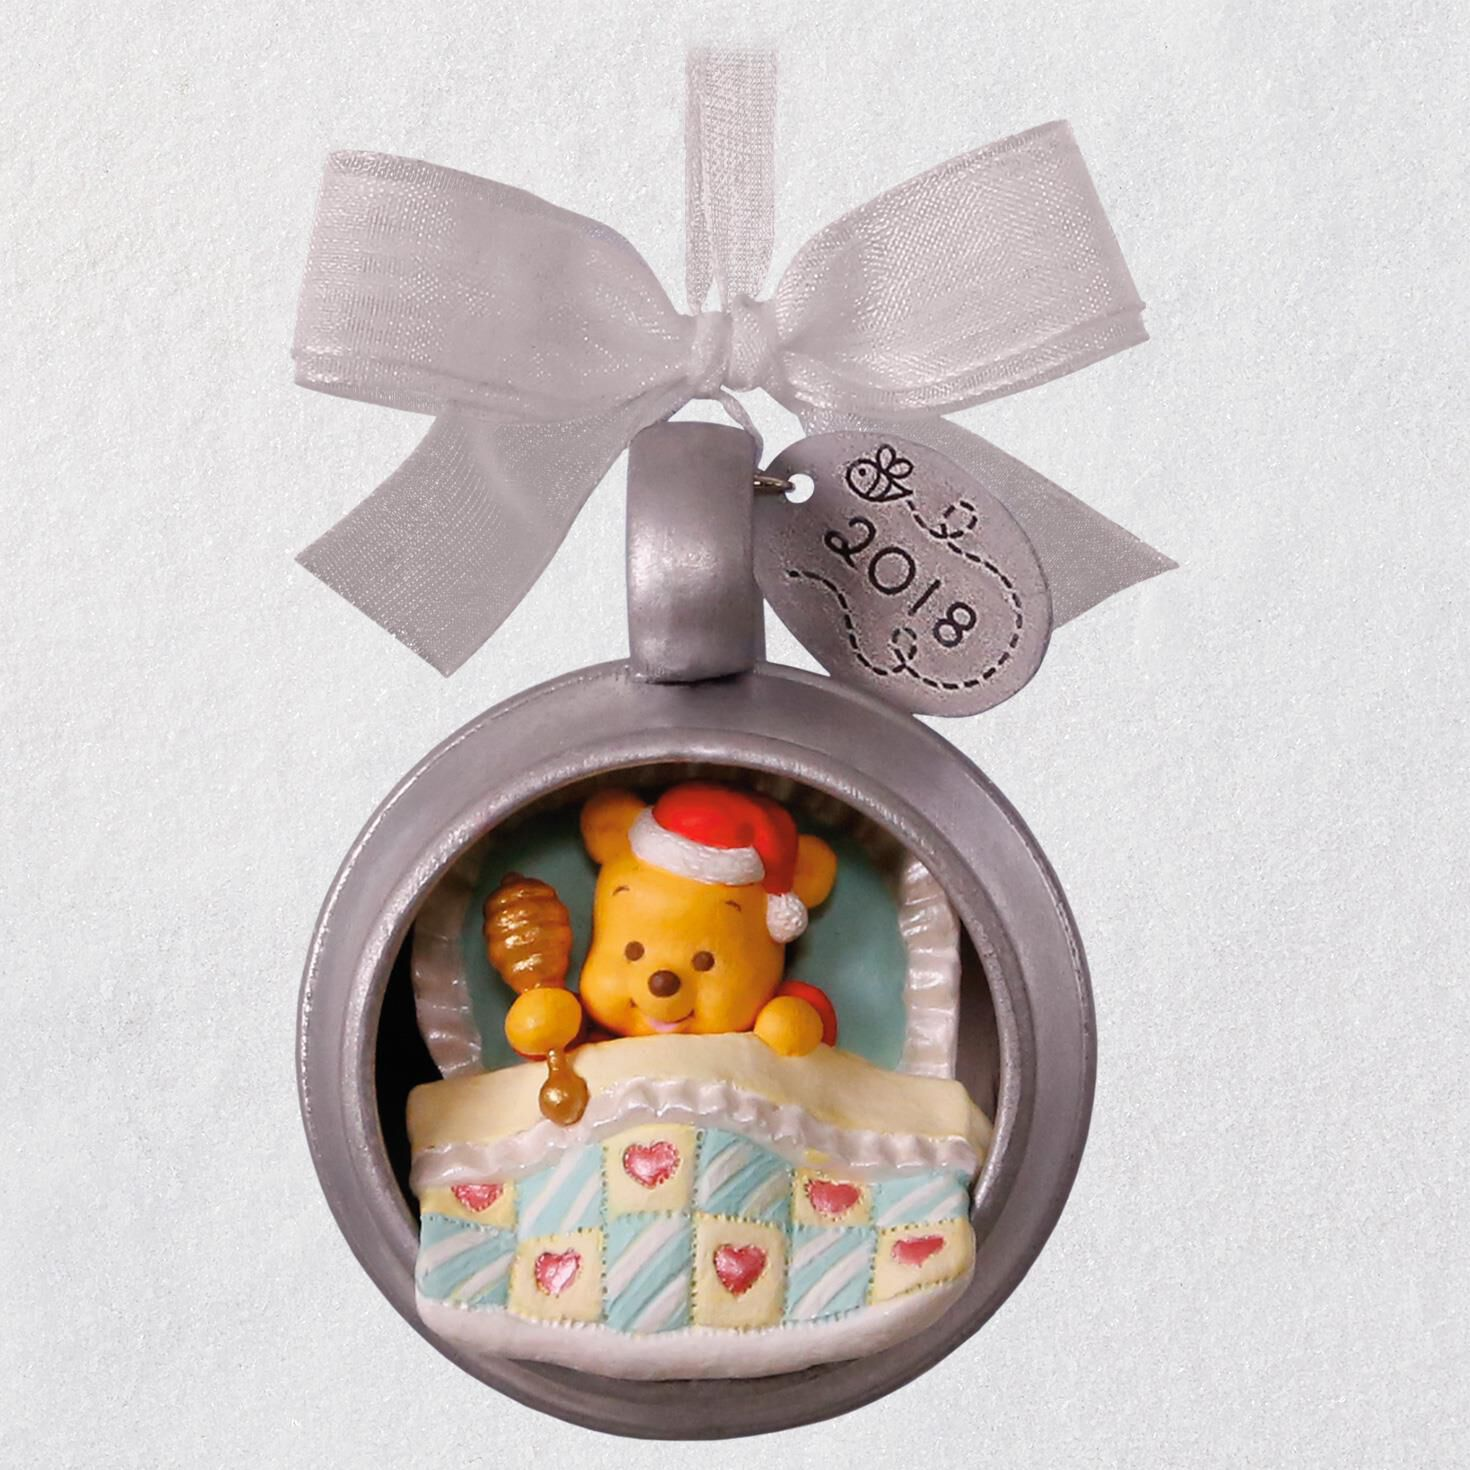 disney winnie the pooh babys first christmas 2018 metal ornament keepsake ornaments hallmark